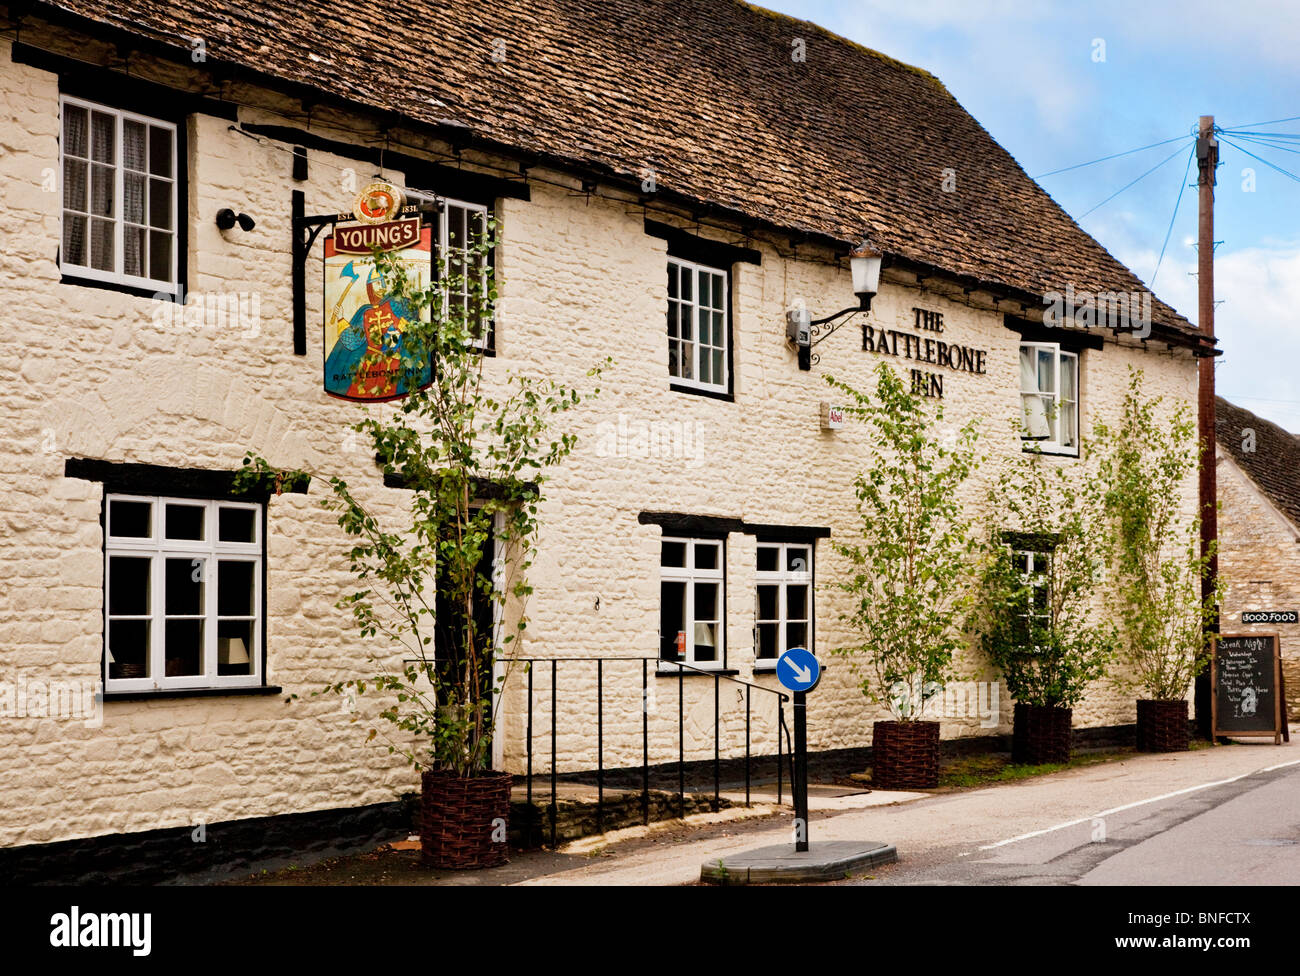 The Rattlebone Inn, a typical English village pub or inn in the Cotswold vilalge of Sherston, Wiltshire, England, - Stock Image